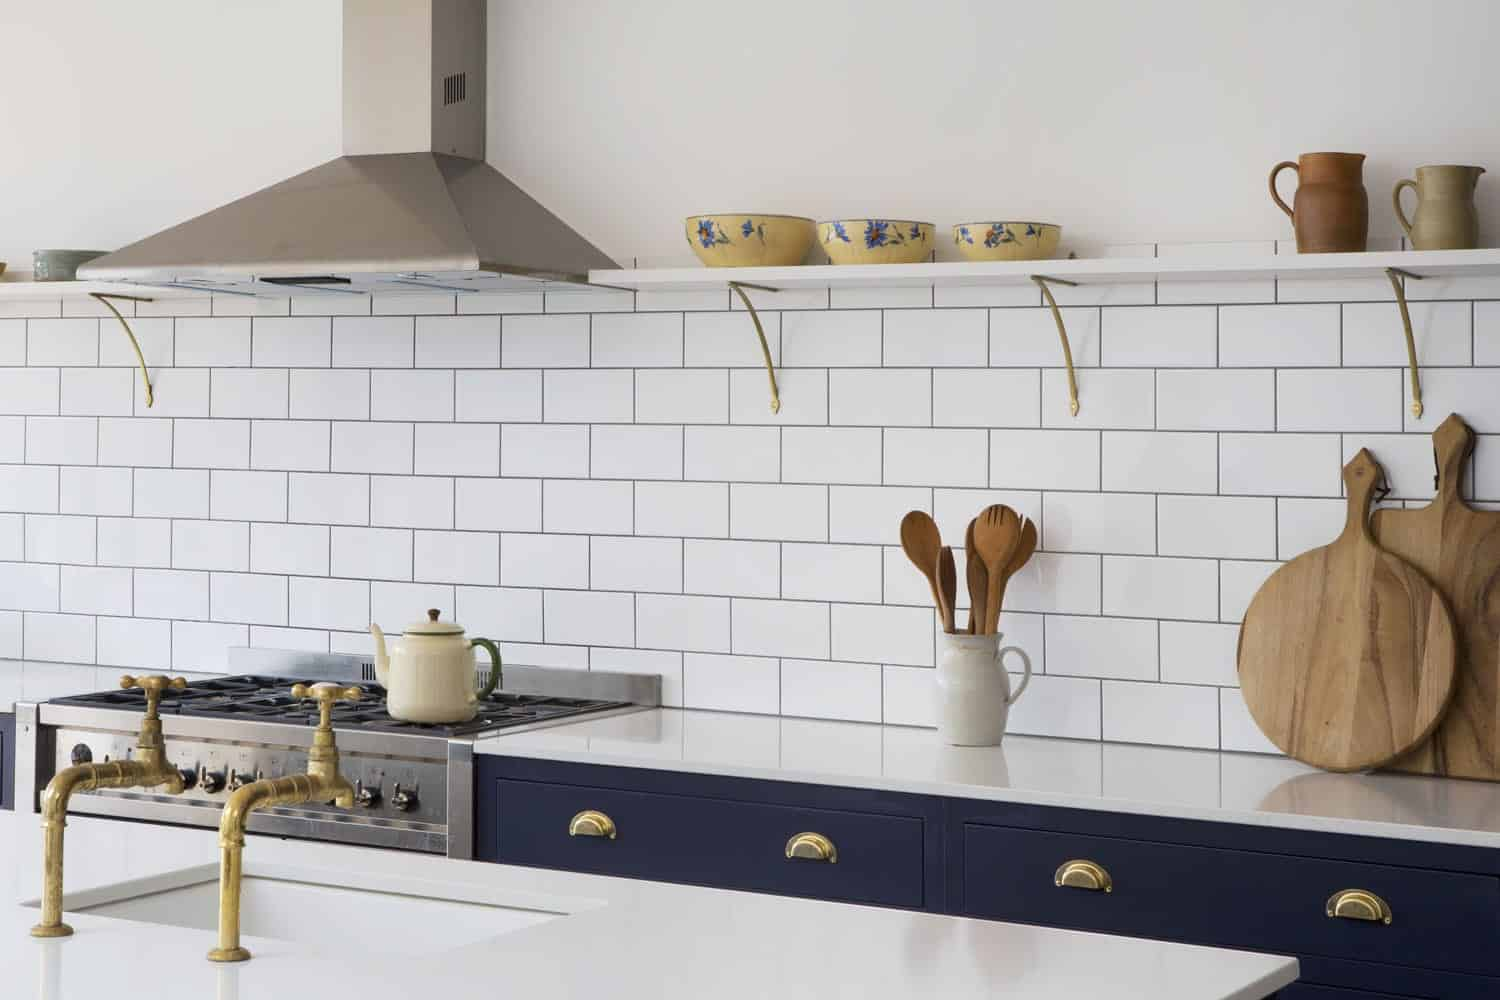 Floating shelving with white kitchen tile backsplash and brass accents.